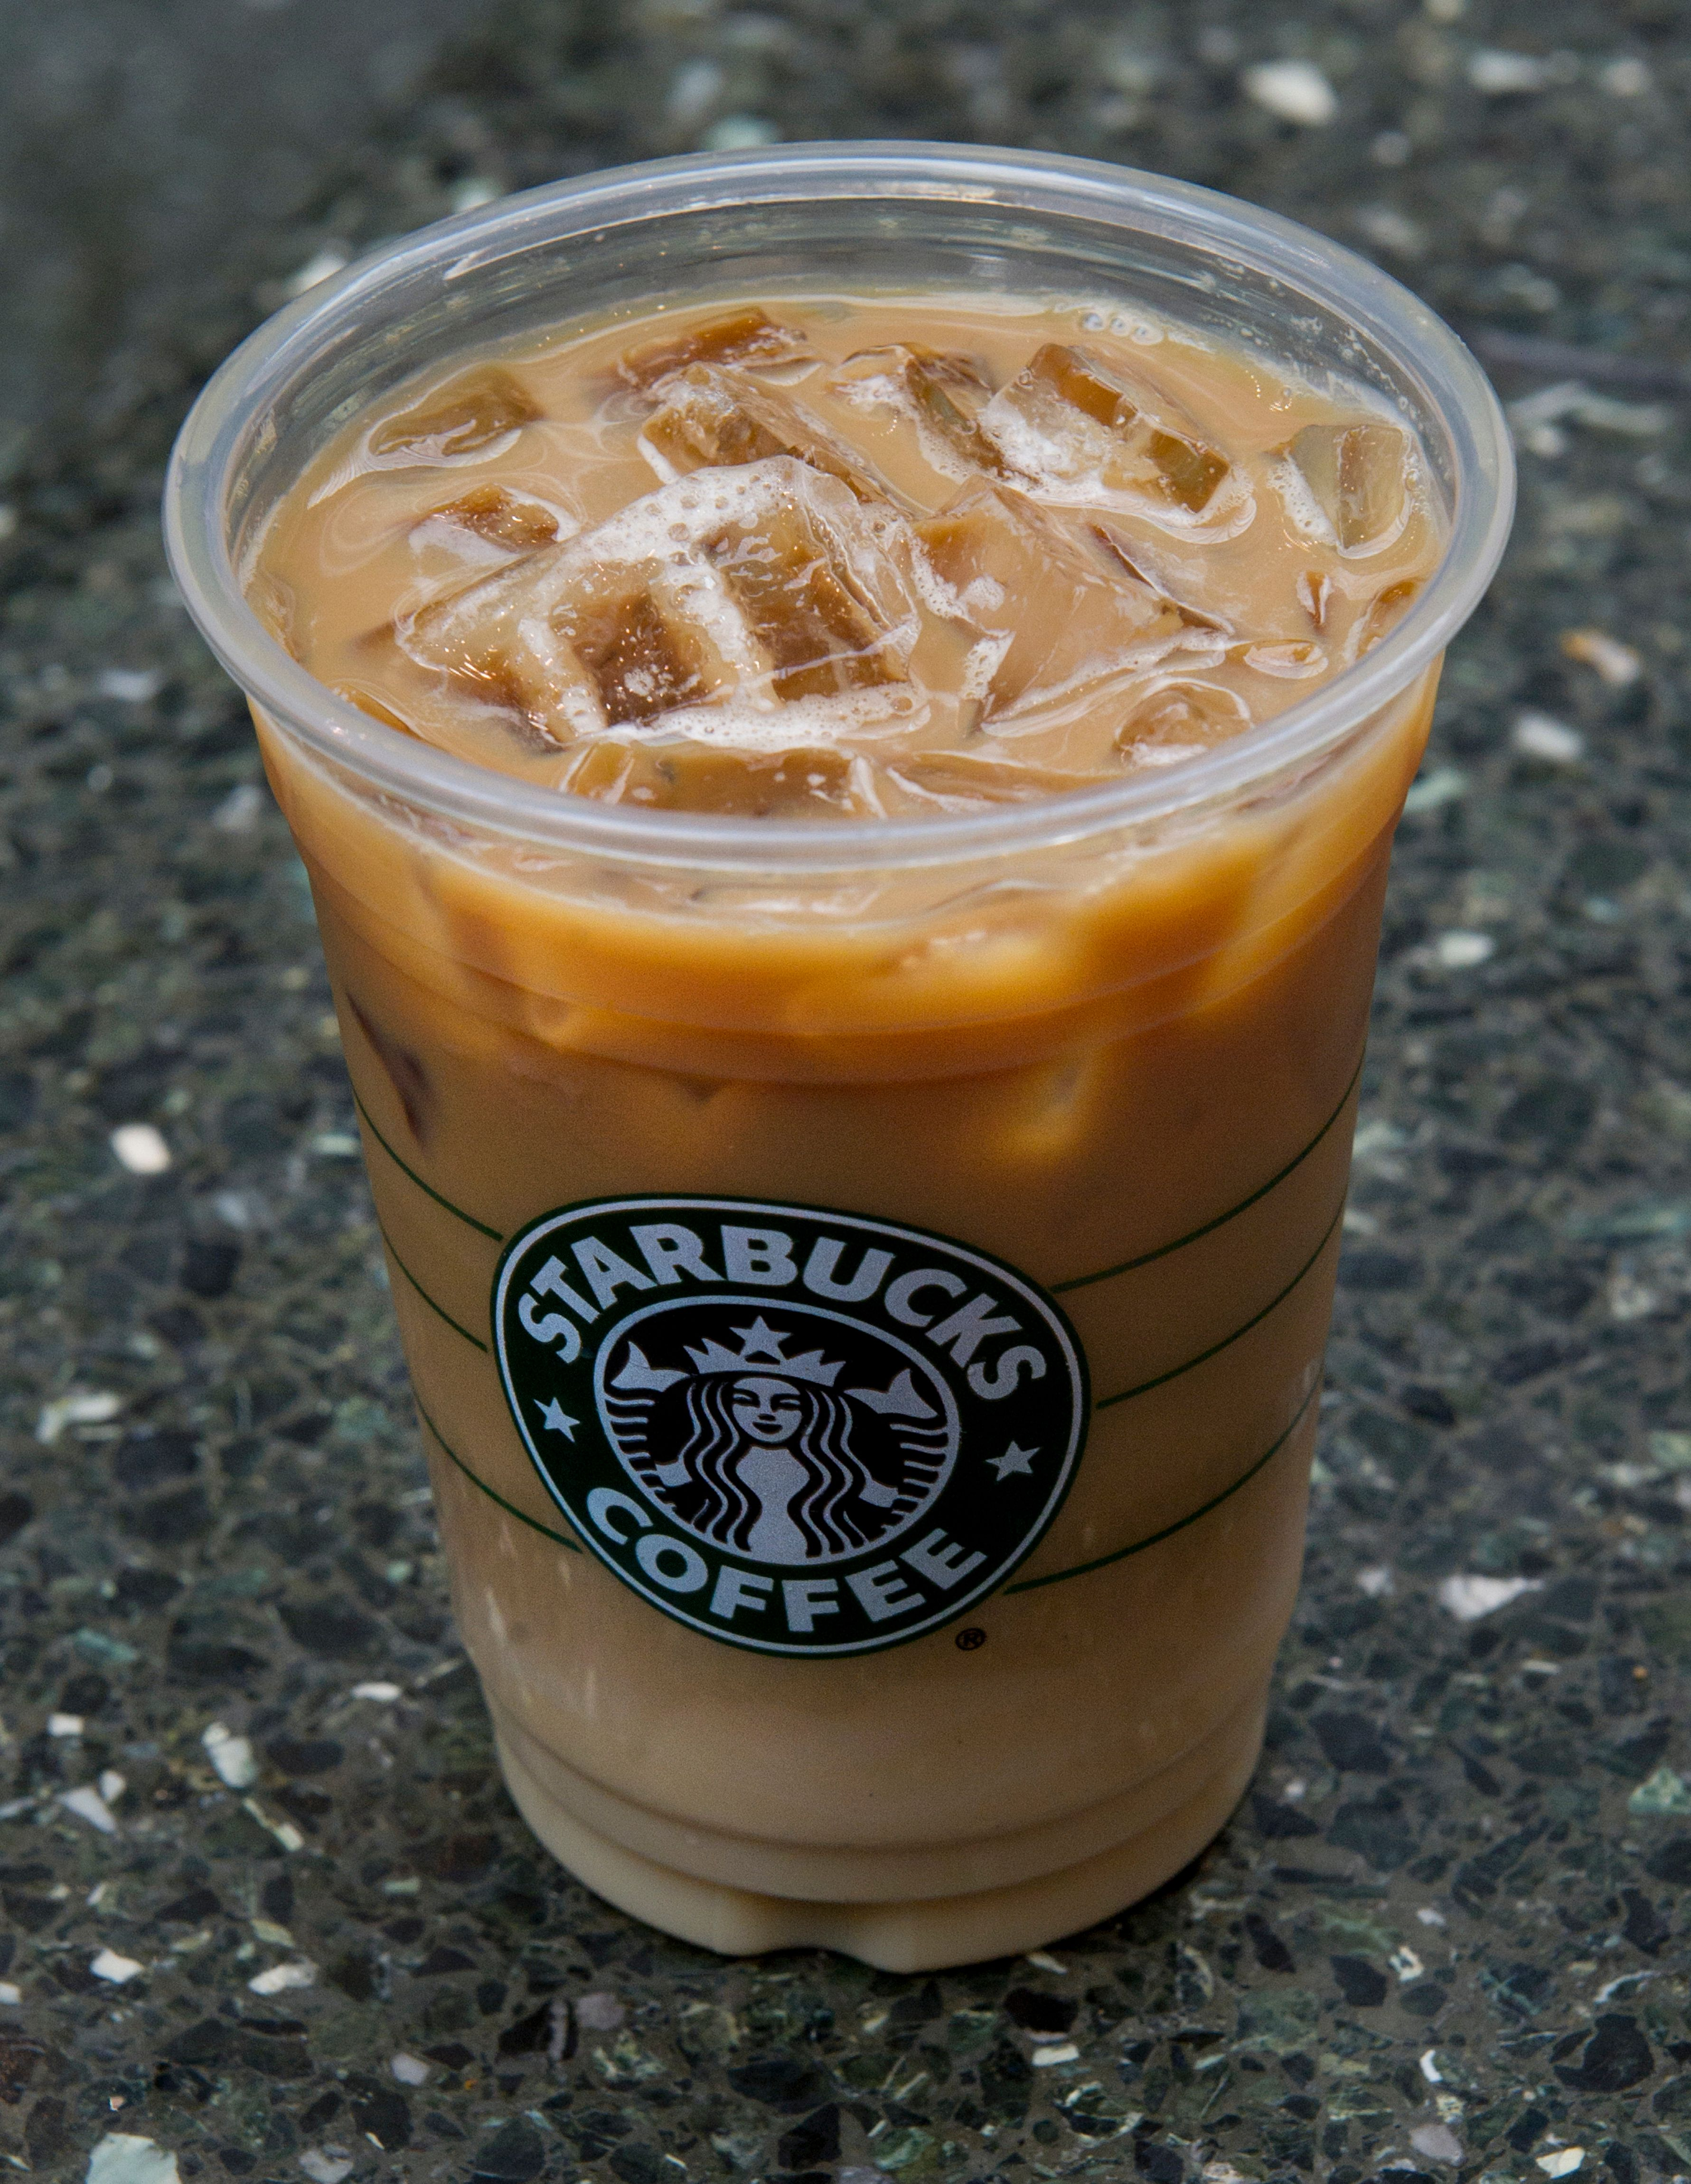 A miffed Starbucks customer is suing the coffee chain for $5 million, accusing them of watering down cold beverages with a di